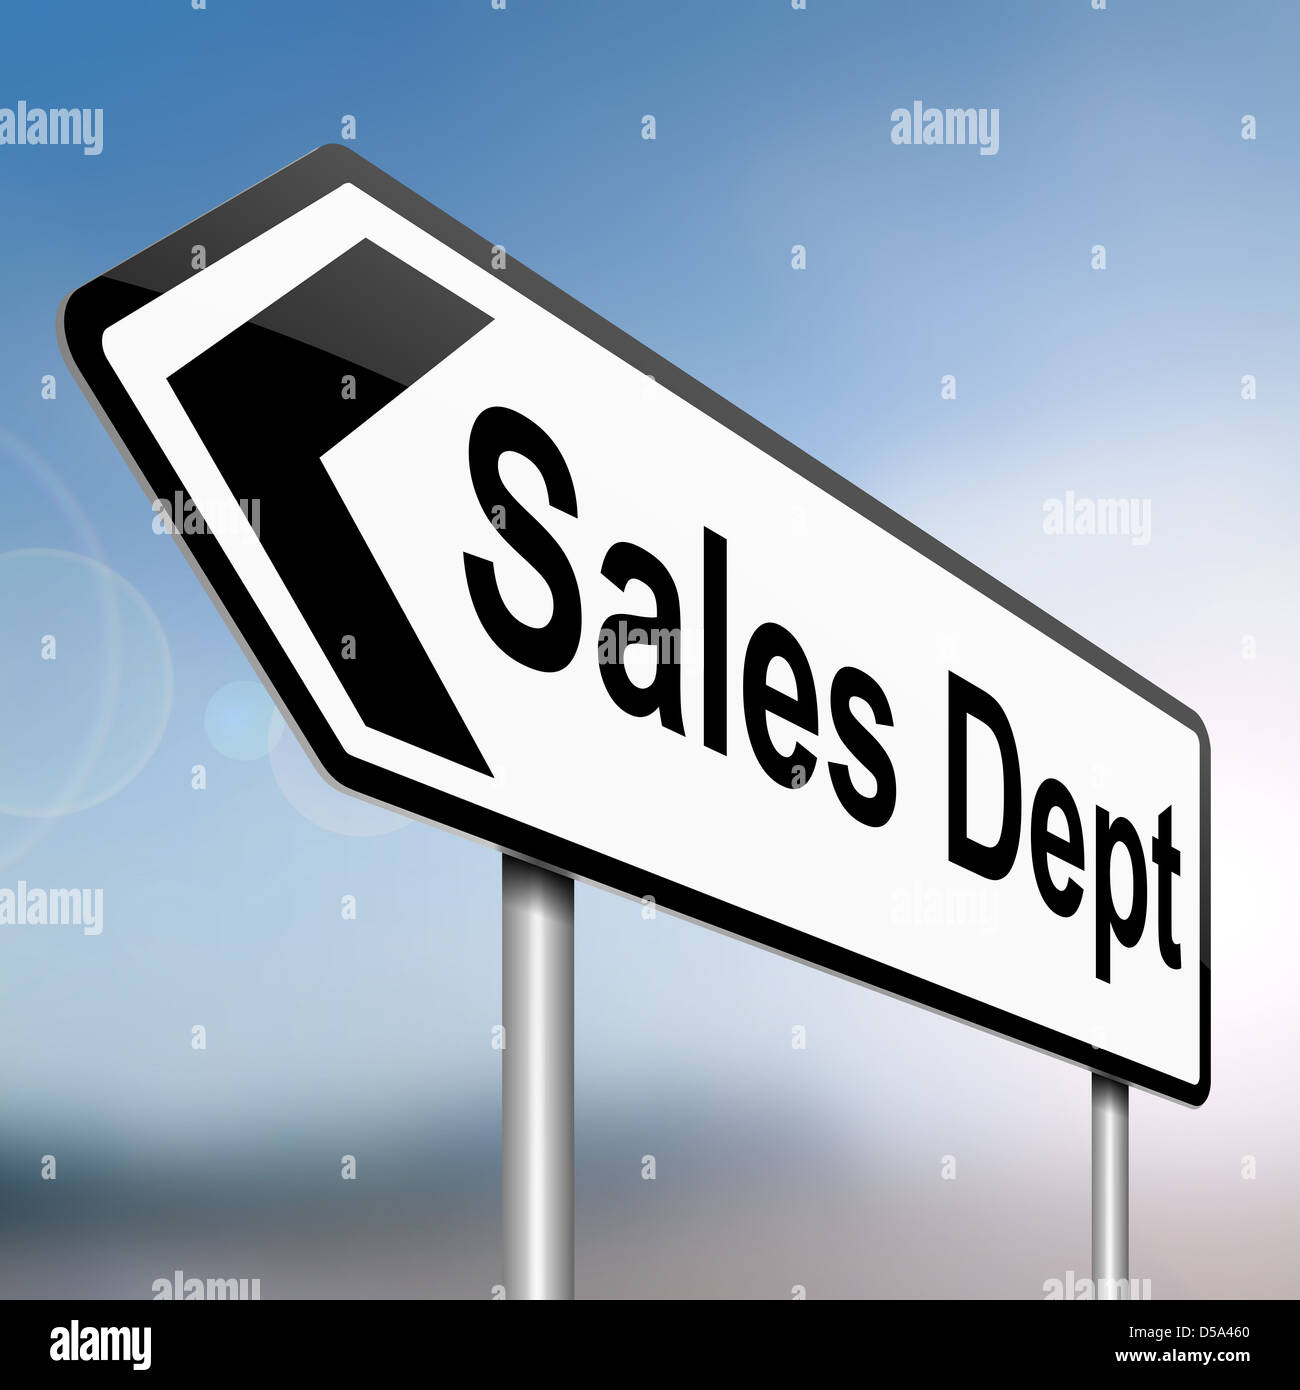 Monthly, quarterly, and annual sales tax returns Form ST, New York State and Local Quarterly Sales and Use Tax Return for Part-Quarterly (Monthly) Filers, for PrompTax Filers Form FT/, Report of Sales Tax Prepayment On Motor Fuel/Diesel Motor Fuel.